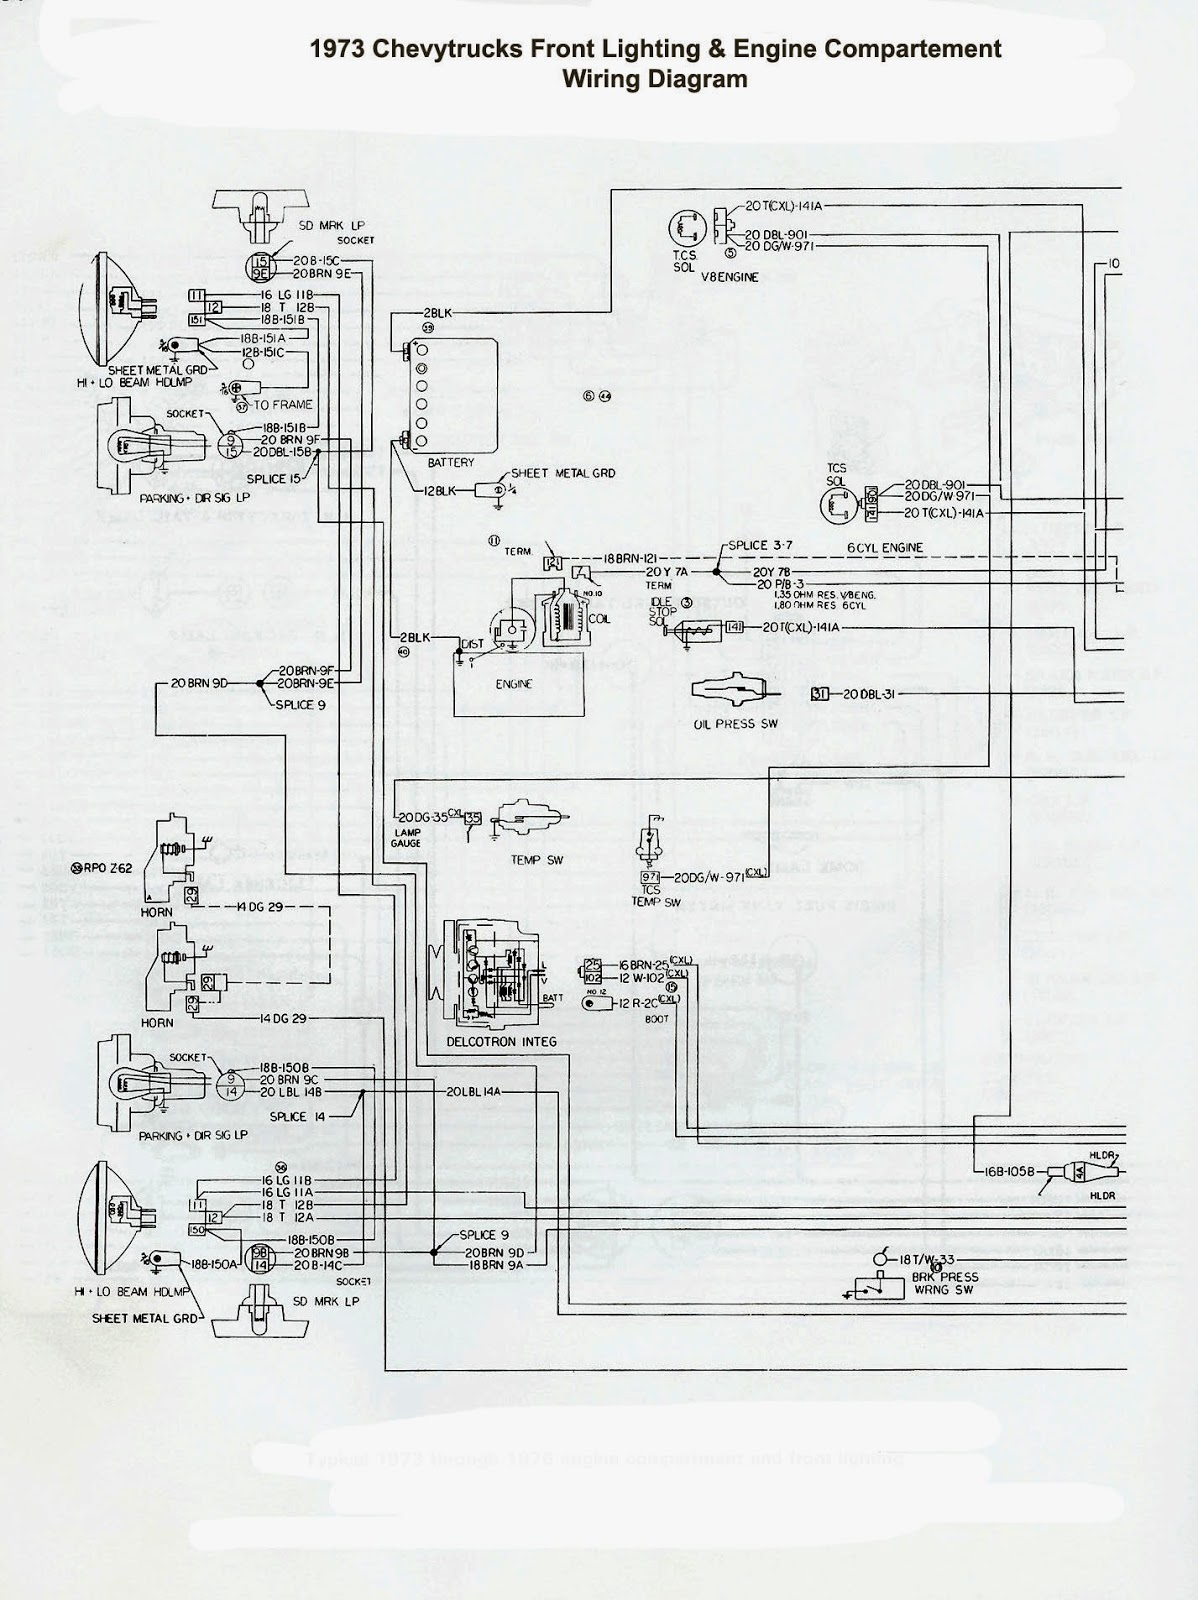 1978 Dodge Truck Ignition Wiring Diagram Austin Mini For Camaro Get Free Image About